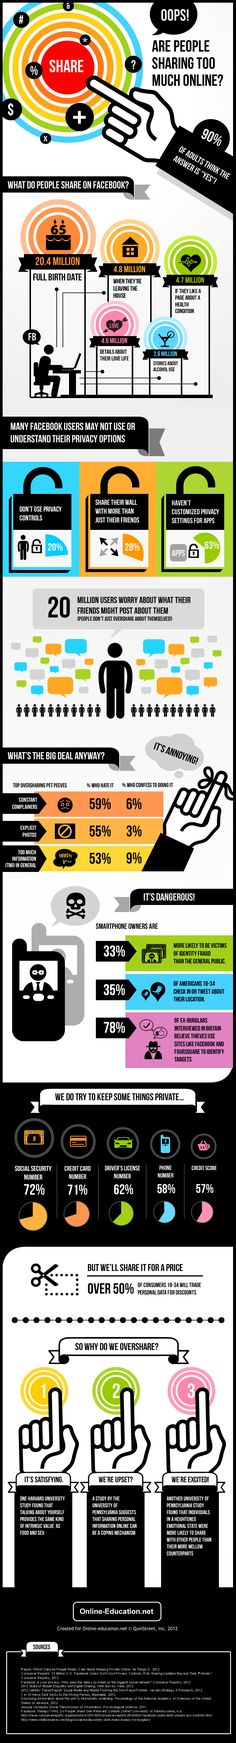 Do you share too nuch on #SocialMedia? #infografia #infographic